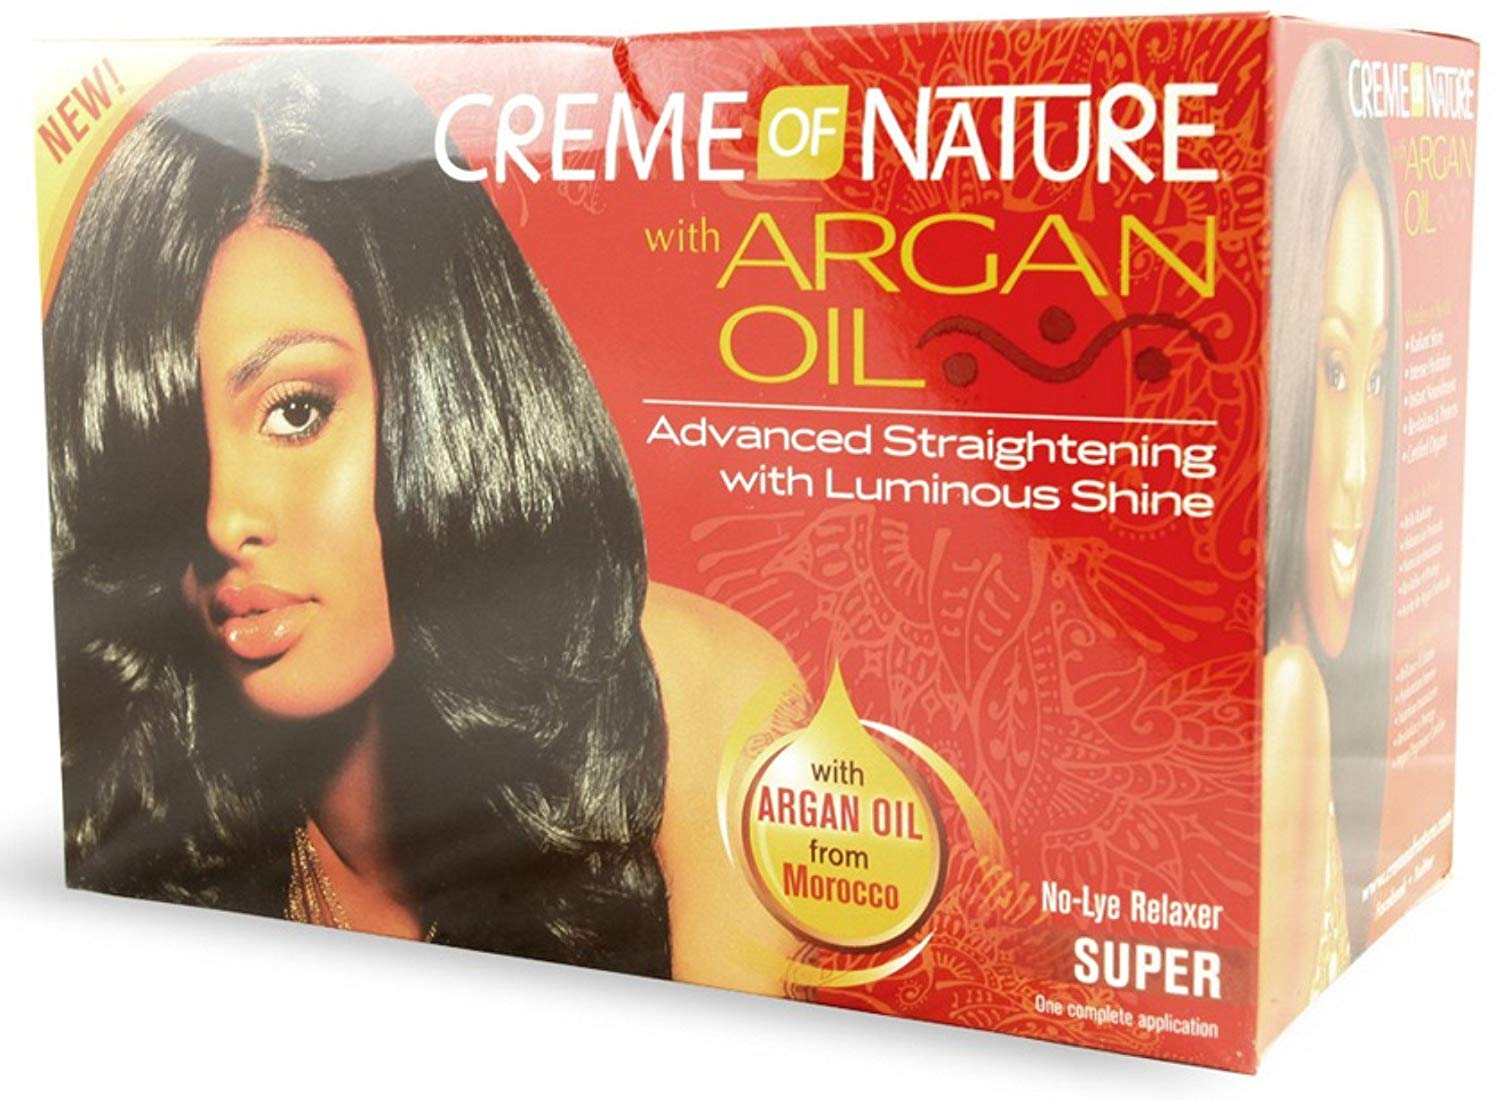 Creme Of Nature With Argan Oil Relaxer - Super